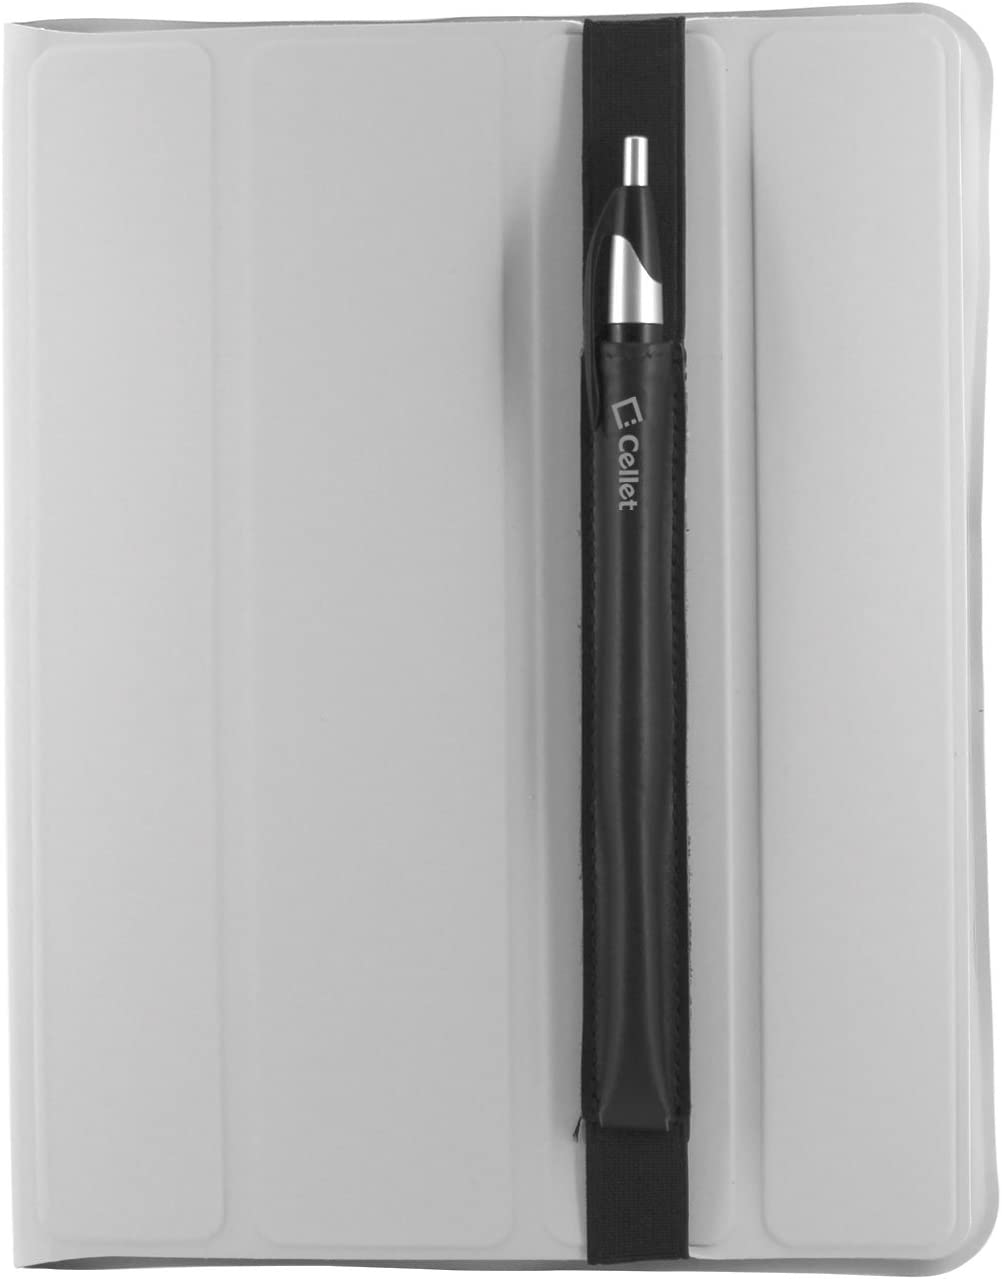 Cellet Stylus Pen and Pencil Holder for Tablets, Compatibility for Apple iPad/iPad Air/Pro 10.5/iPad 9.7, Samsung Galaxy Tab 4/3/2 Google Pixel, ZenPad, Amazon Fire, Microsoft Surface-Black